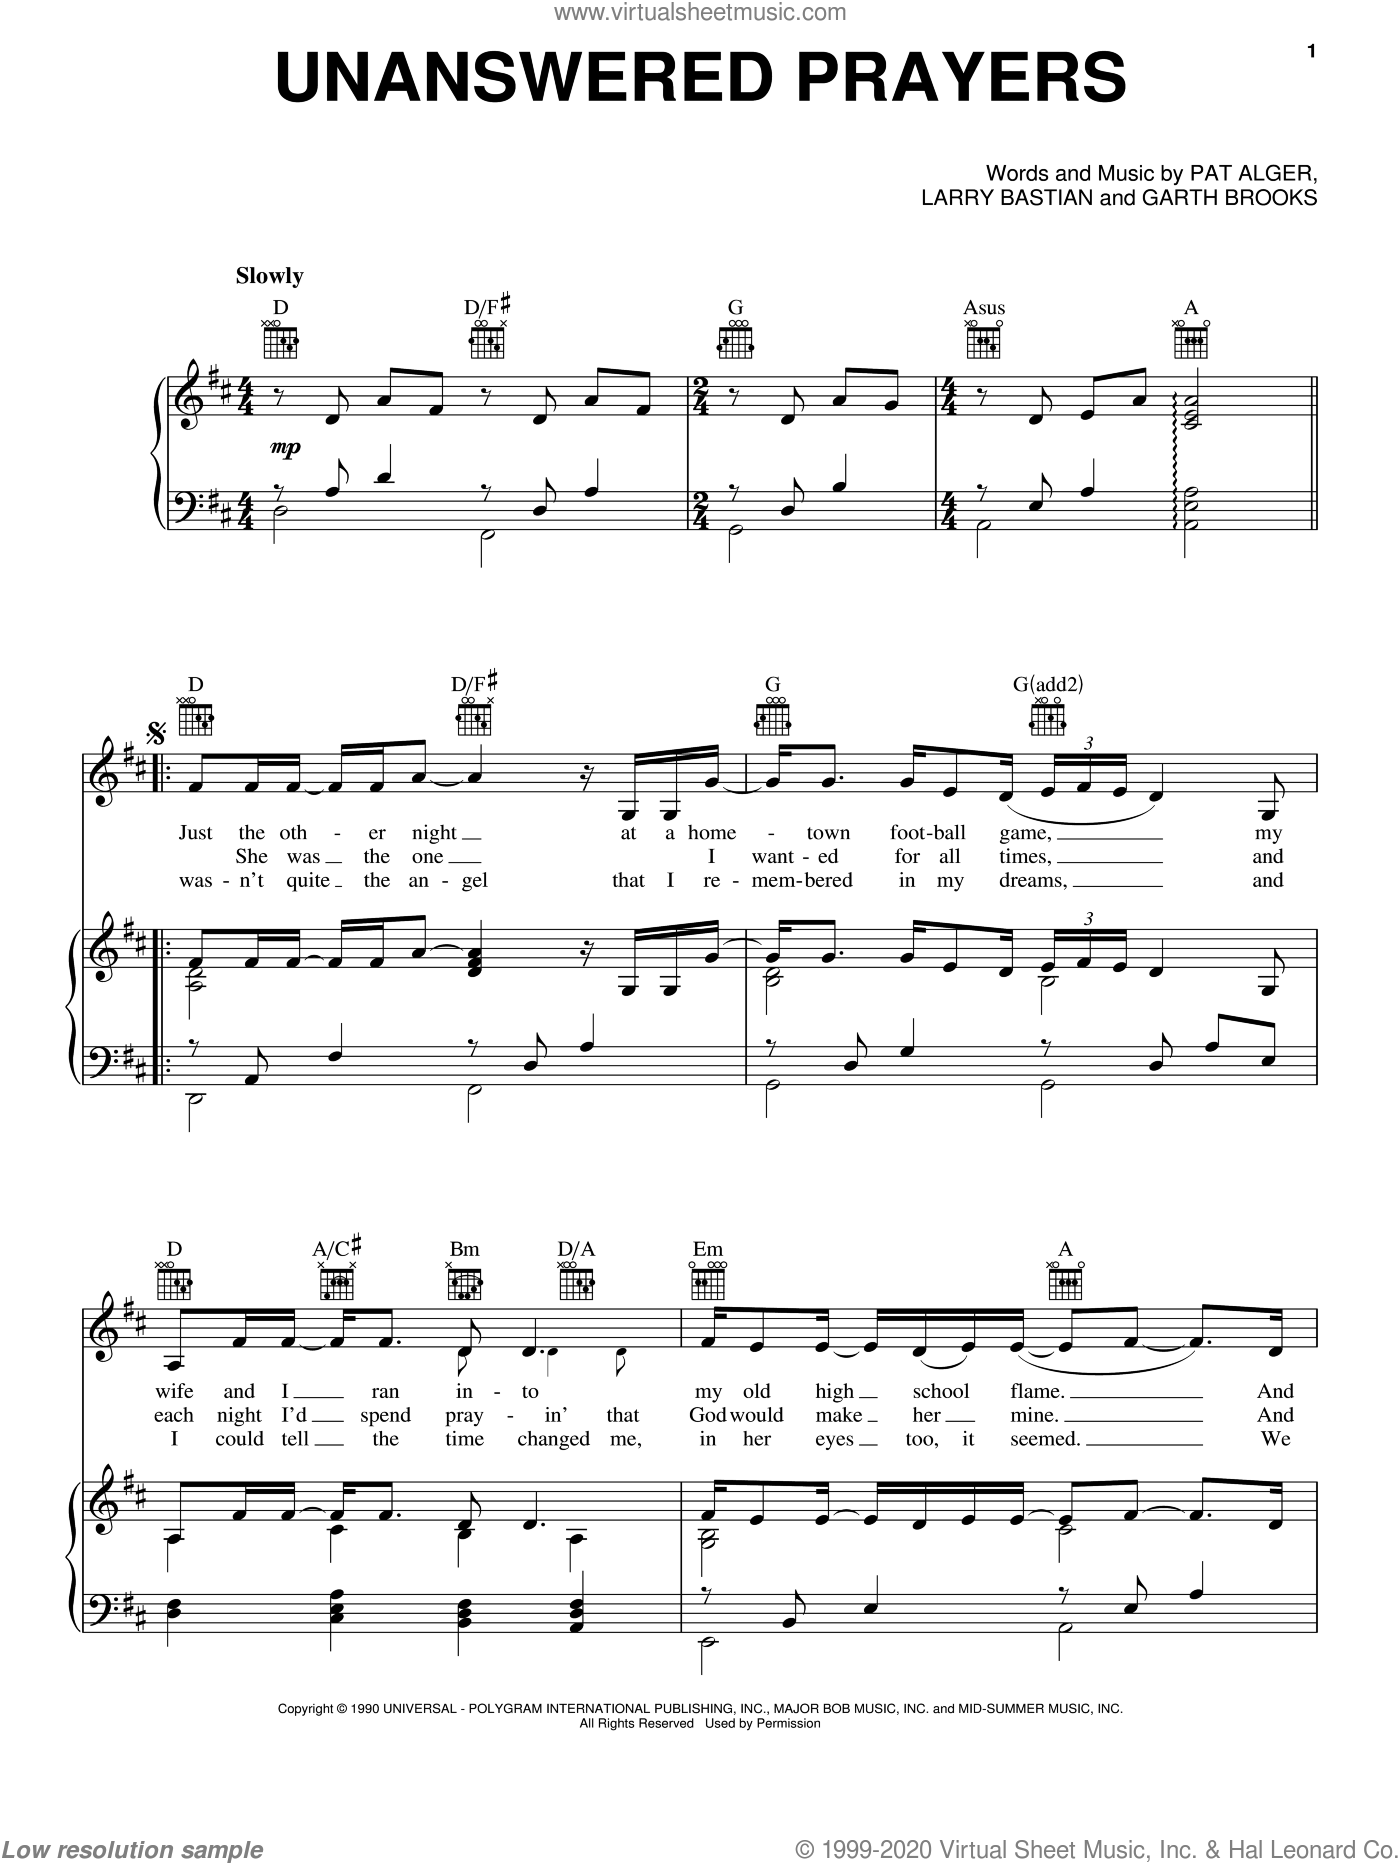 Unanswered Prayers sheet music for voice, piano or guitar by Patrick Alger